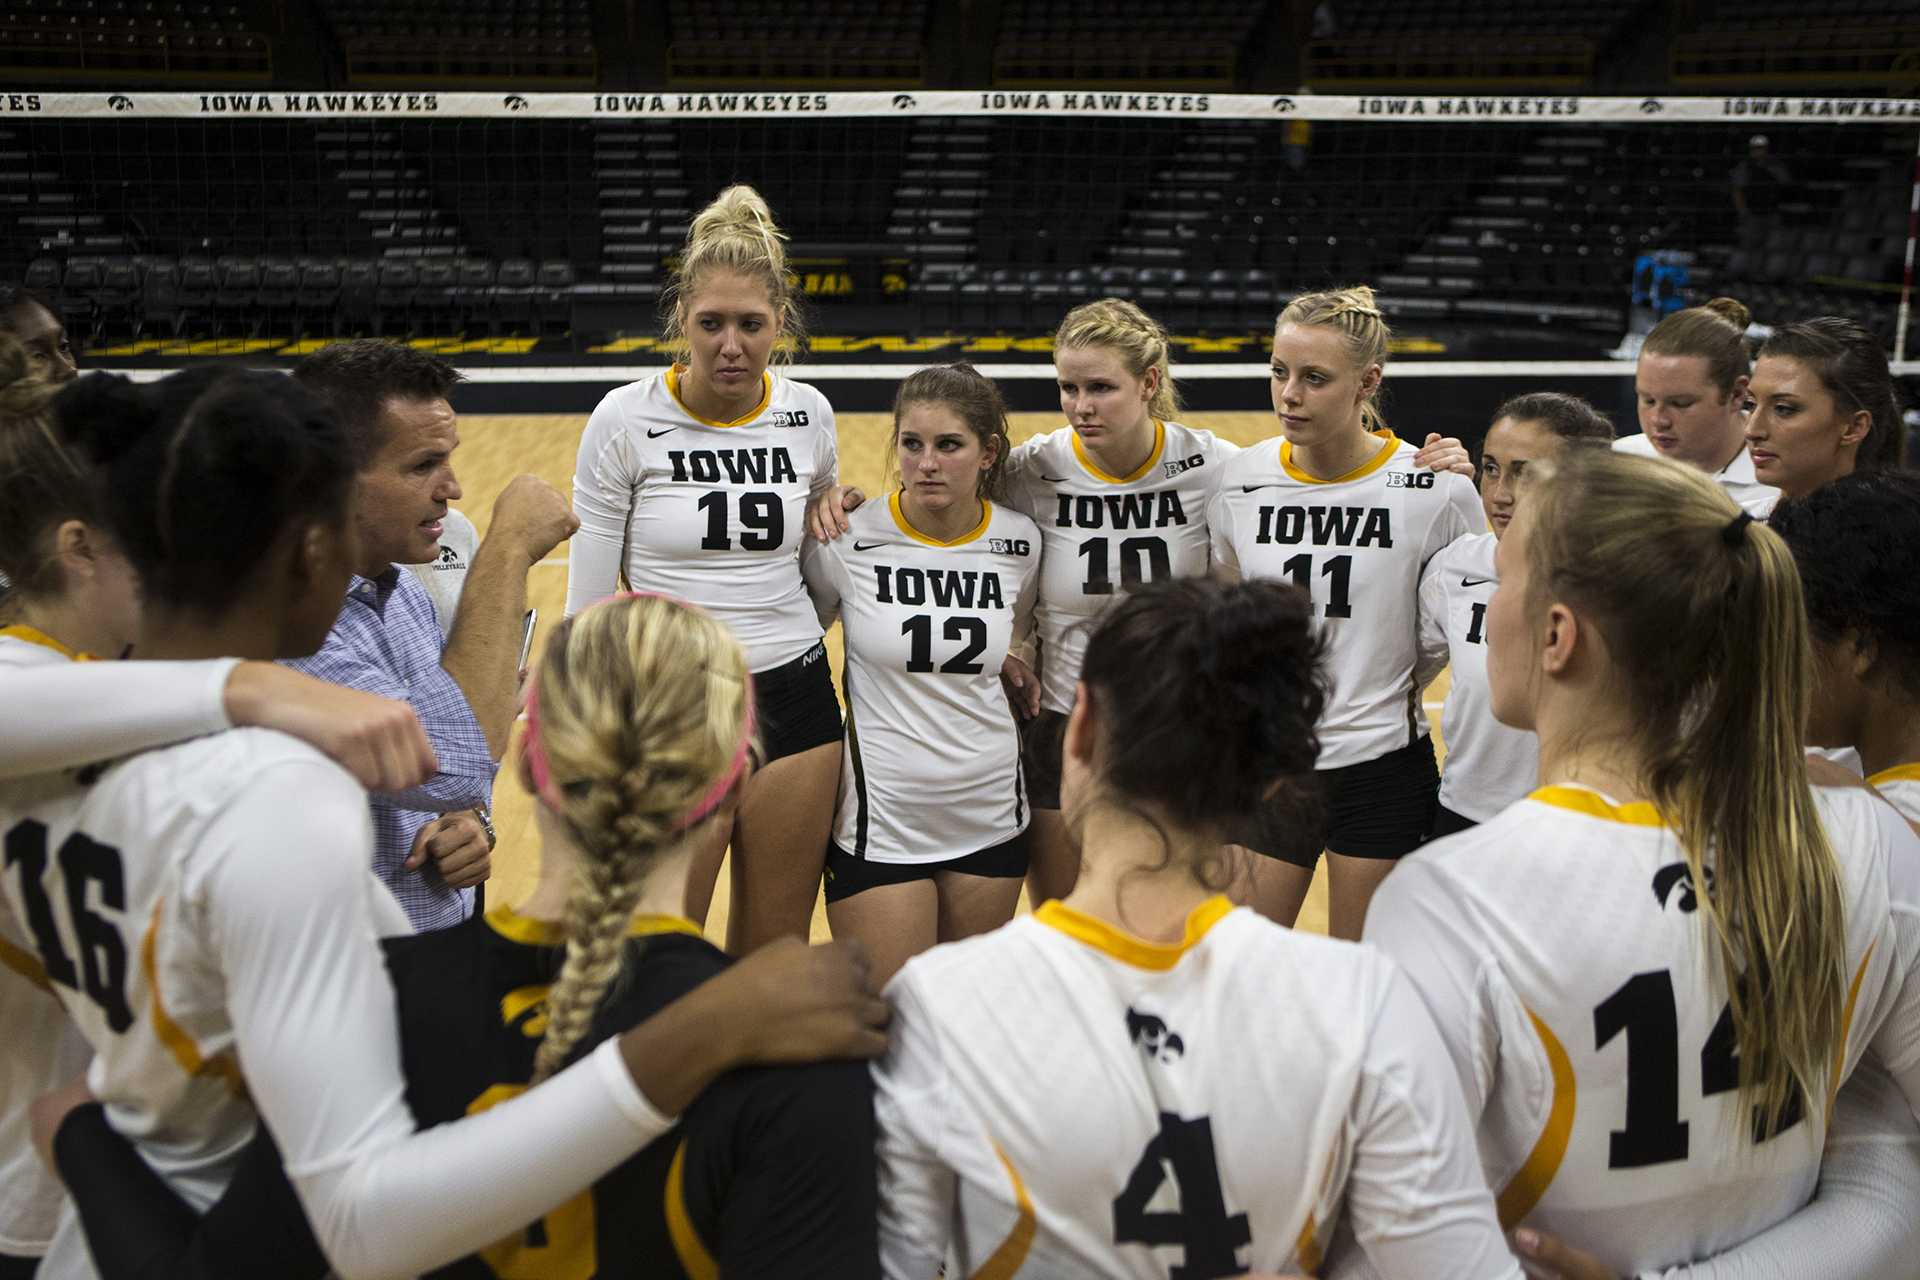 Iowa head coach Bond Shymansky speaks to the team after the match between Iowa and Northern Illinois inside Carver-Hawkeye Arena on Friday, Sept. 8, 2017. The Hawkeyes went on to defeat the Huskies 3-0. (Ben Smith/The Daily Iowan)